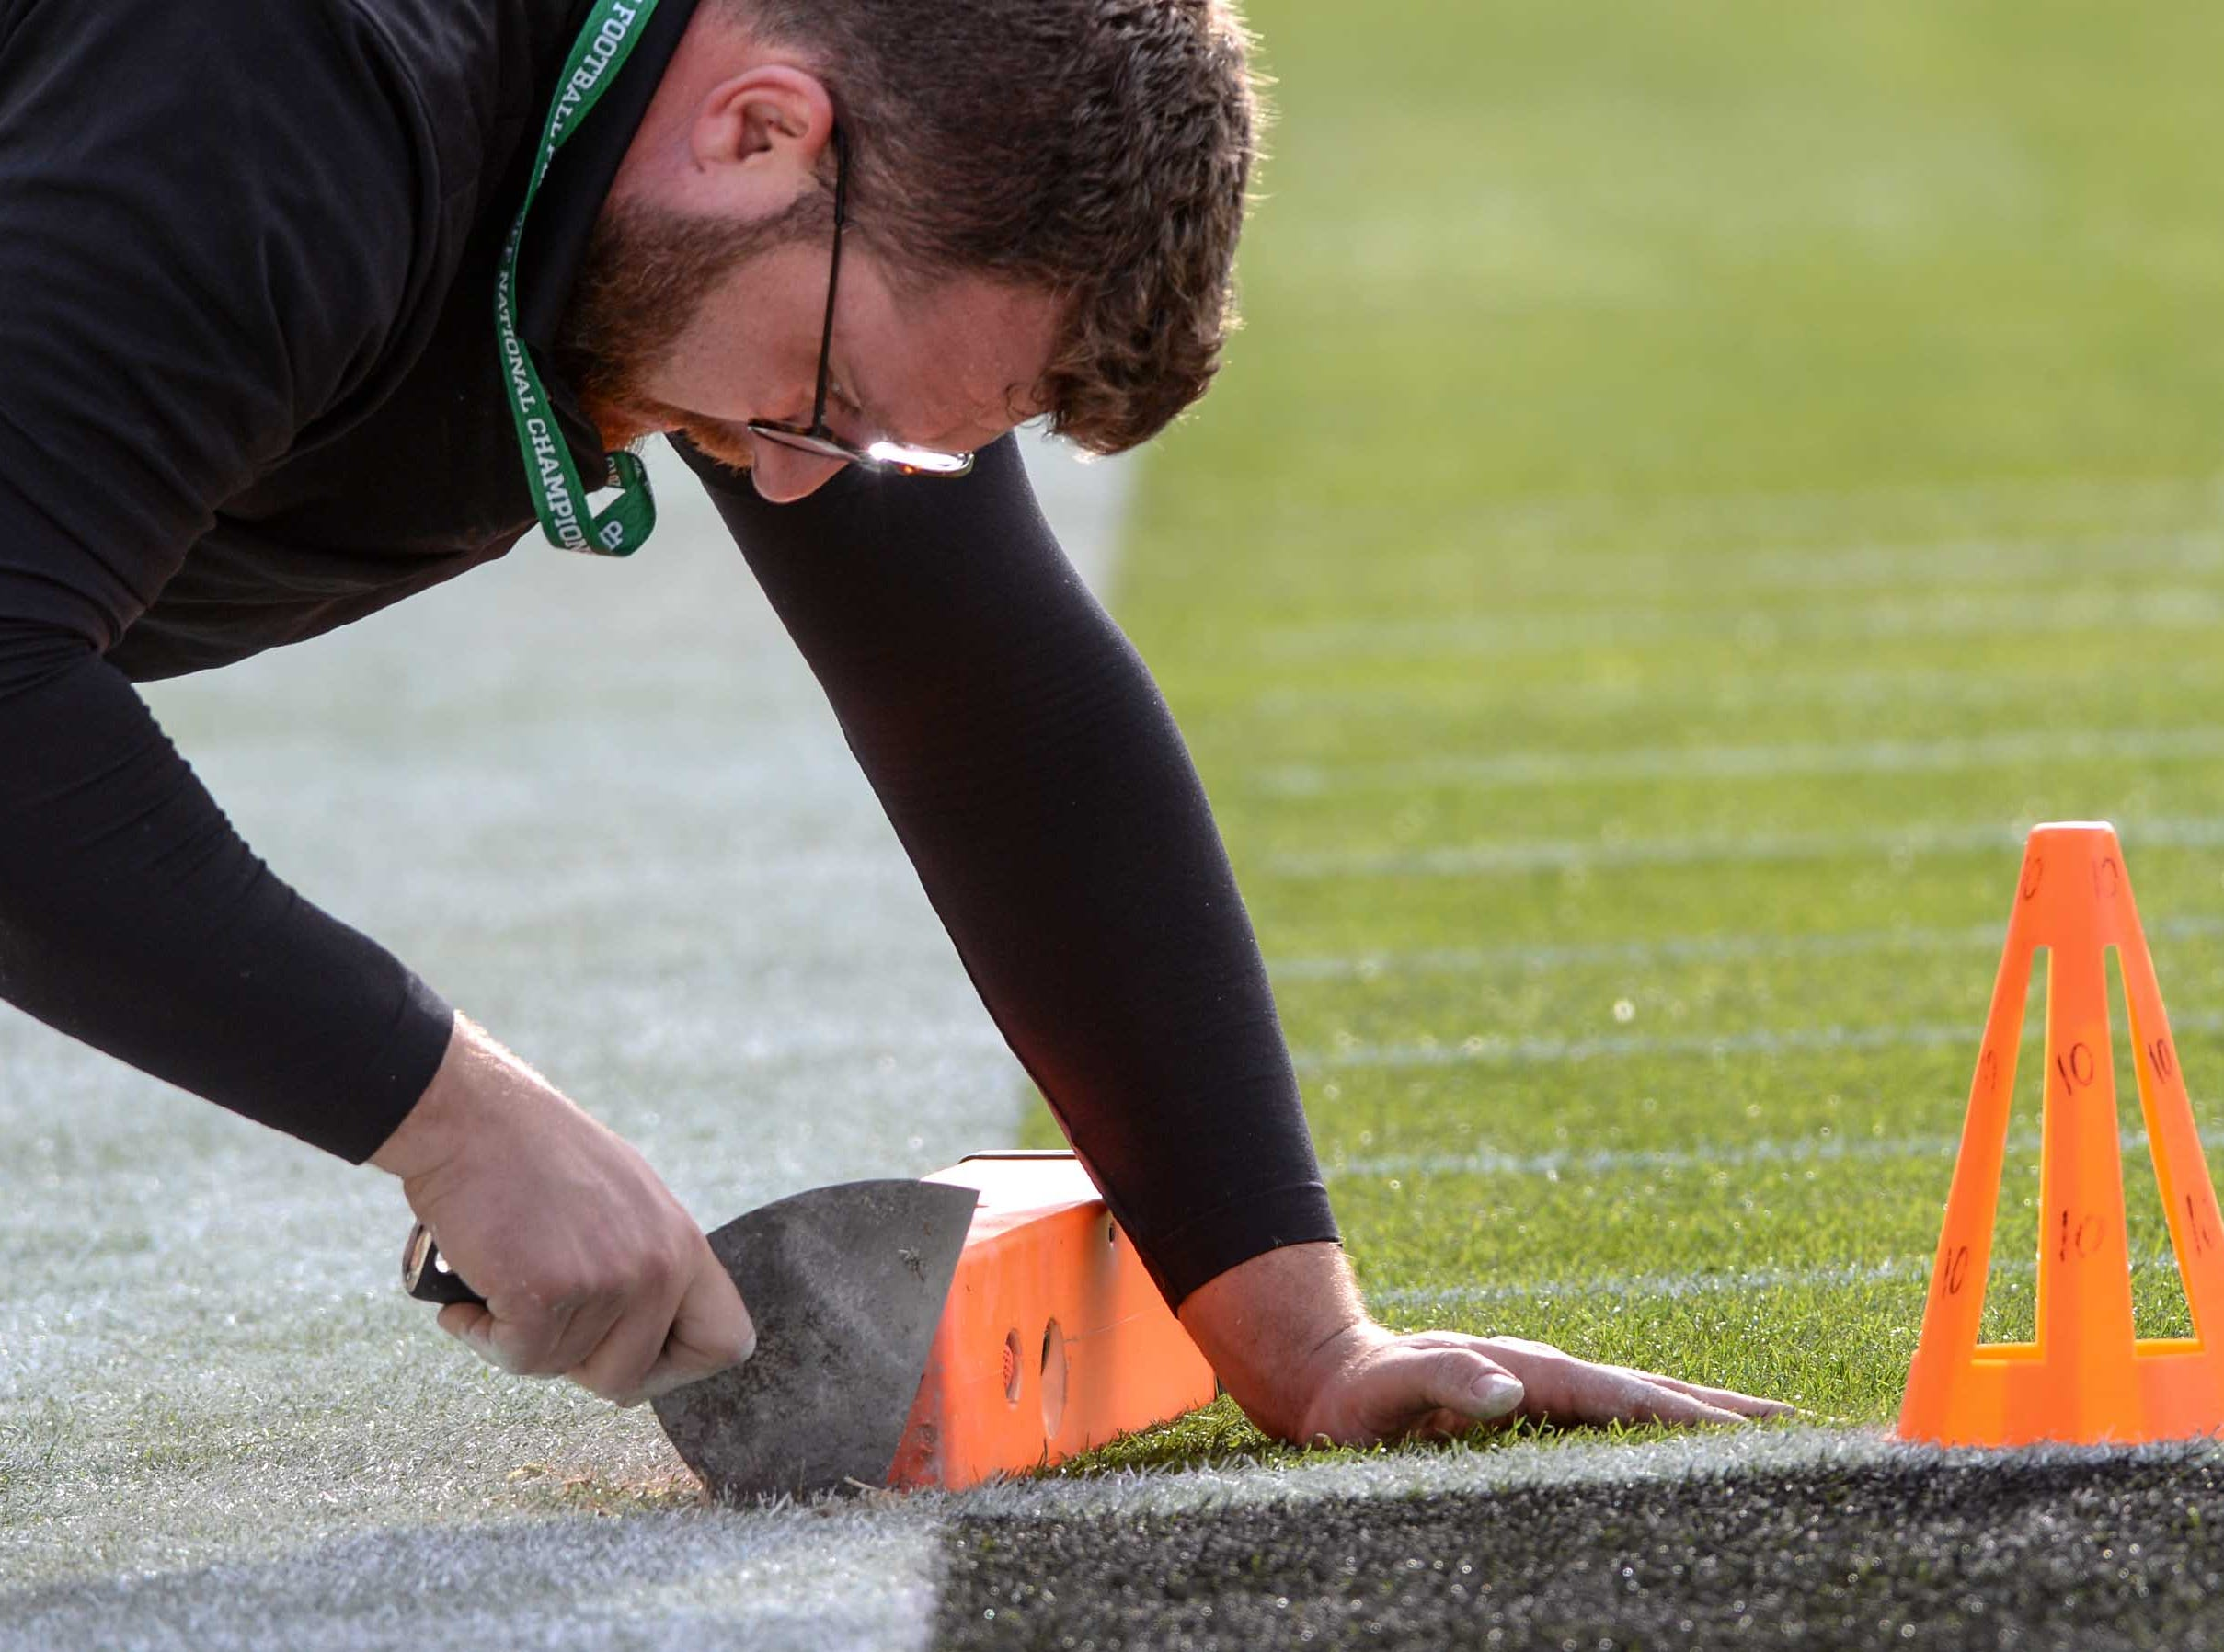 Mark McGee fixes an end zone camera marker in the grassy field as officials prepare before the kickoff during the College Football Championship at Levi's Stadium in Santa Clara, California Monday, January 7, 2019.